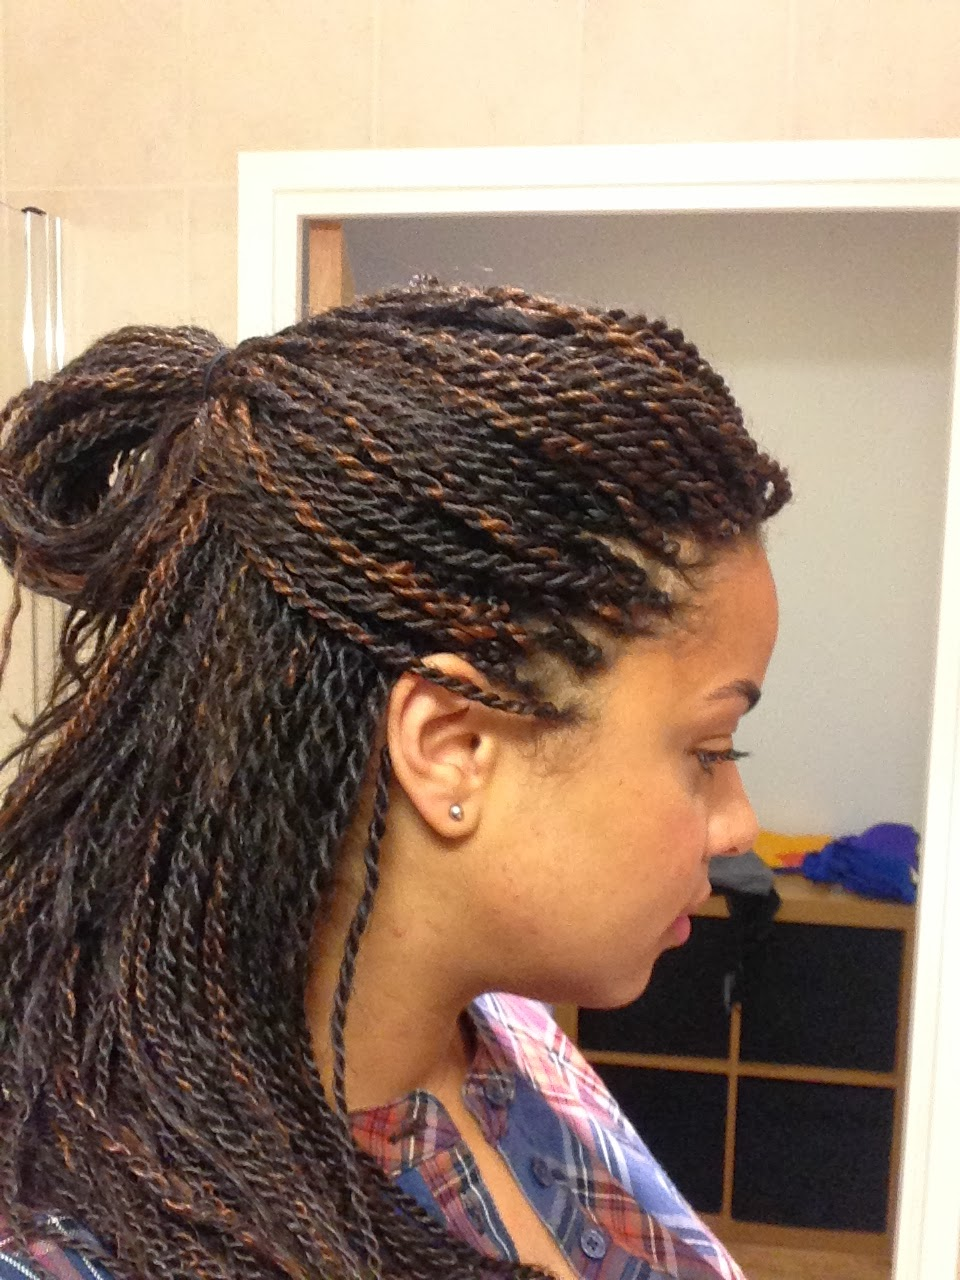 Expression Hair For Braids Color 30 | hairstylegalleries.com